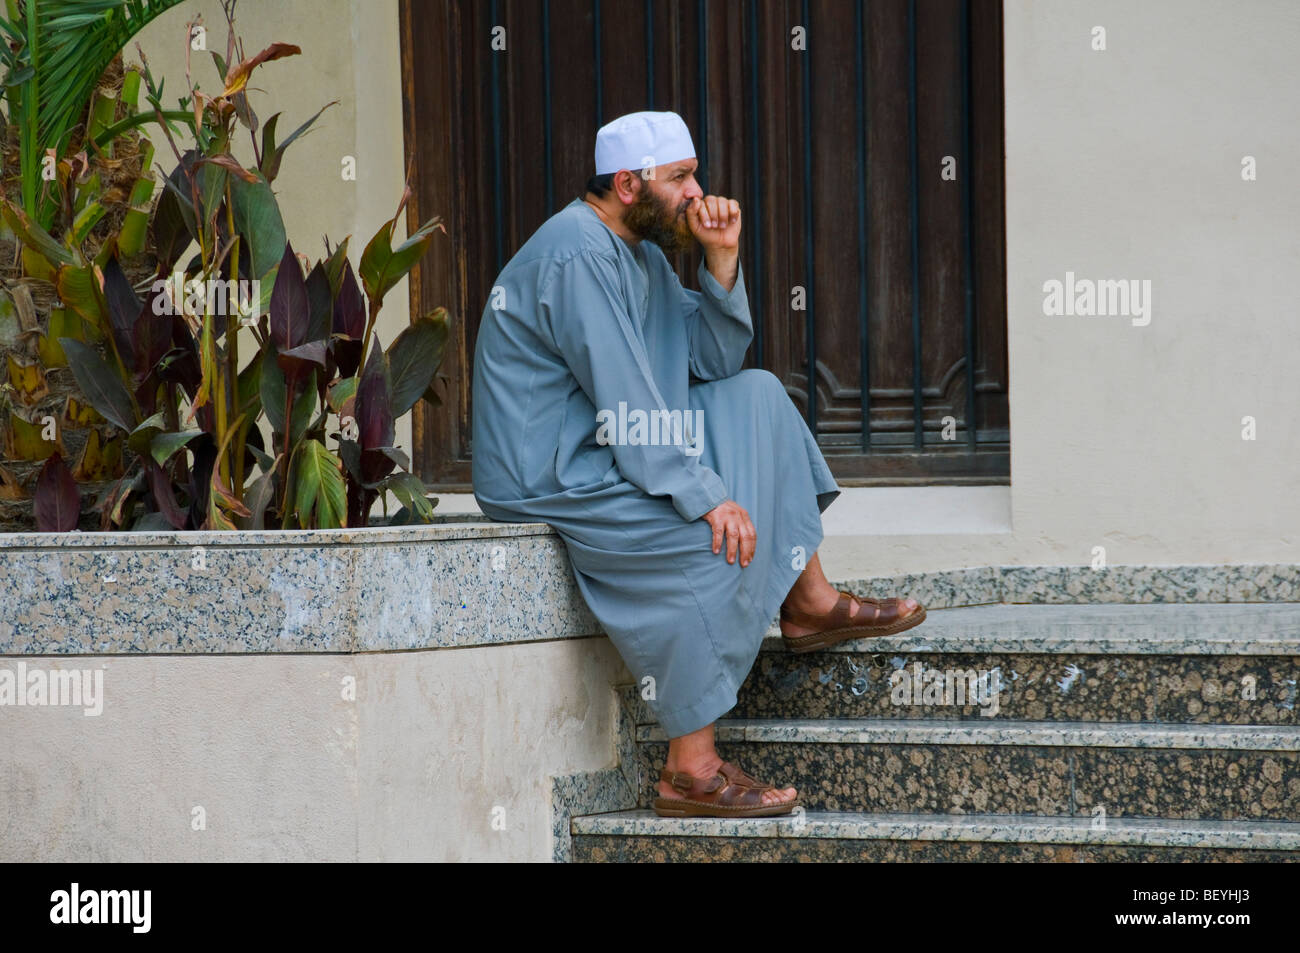 Worshiper in front of Mosque Dubai - Stock Image